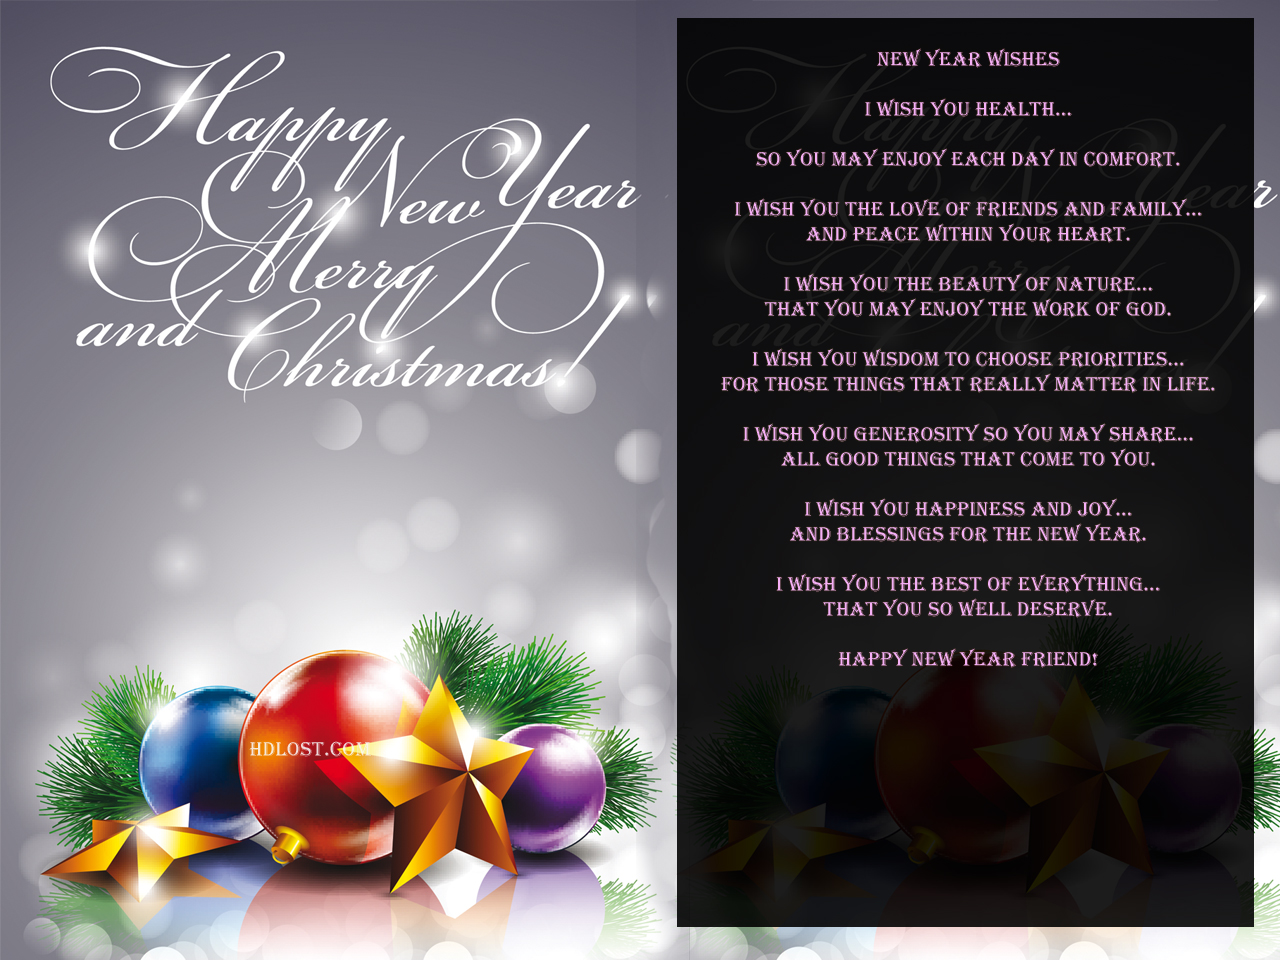 Hd Wallpapers Happy New Year And Christmas Best Wishes